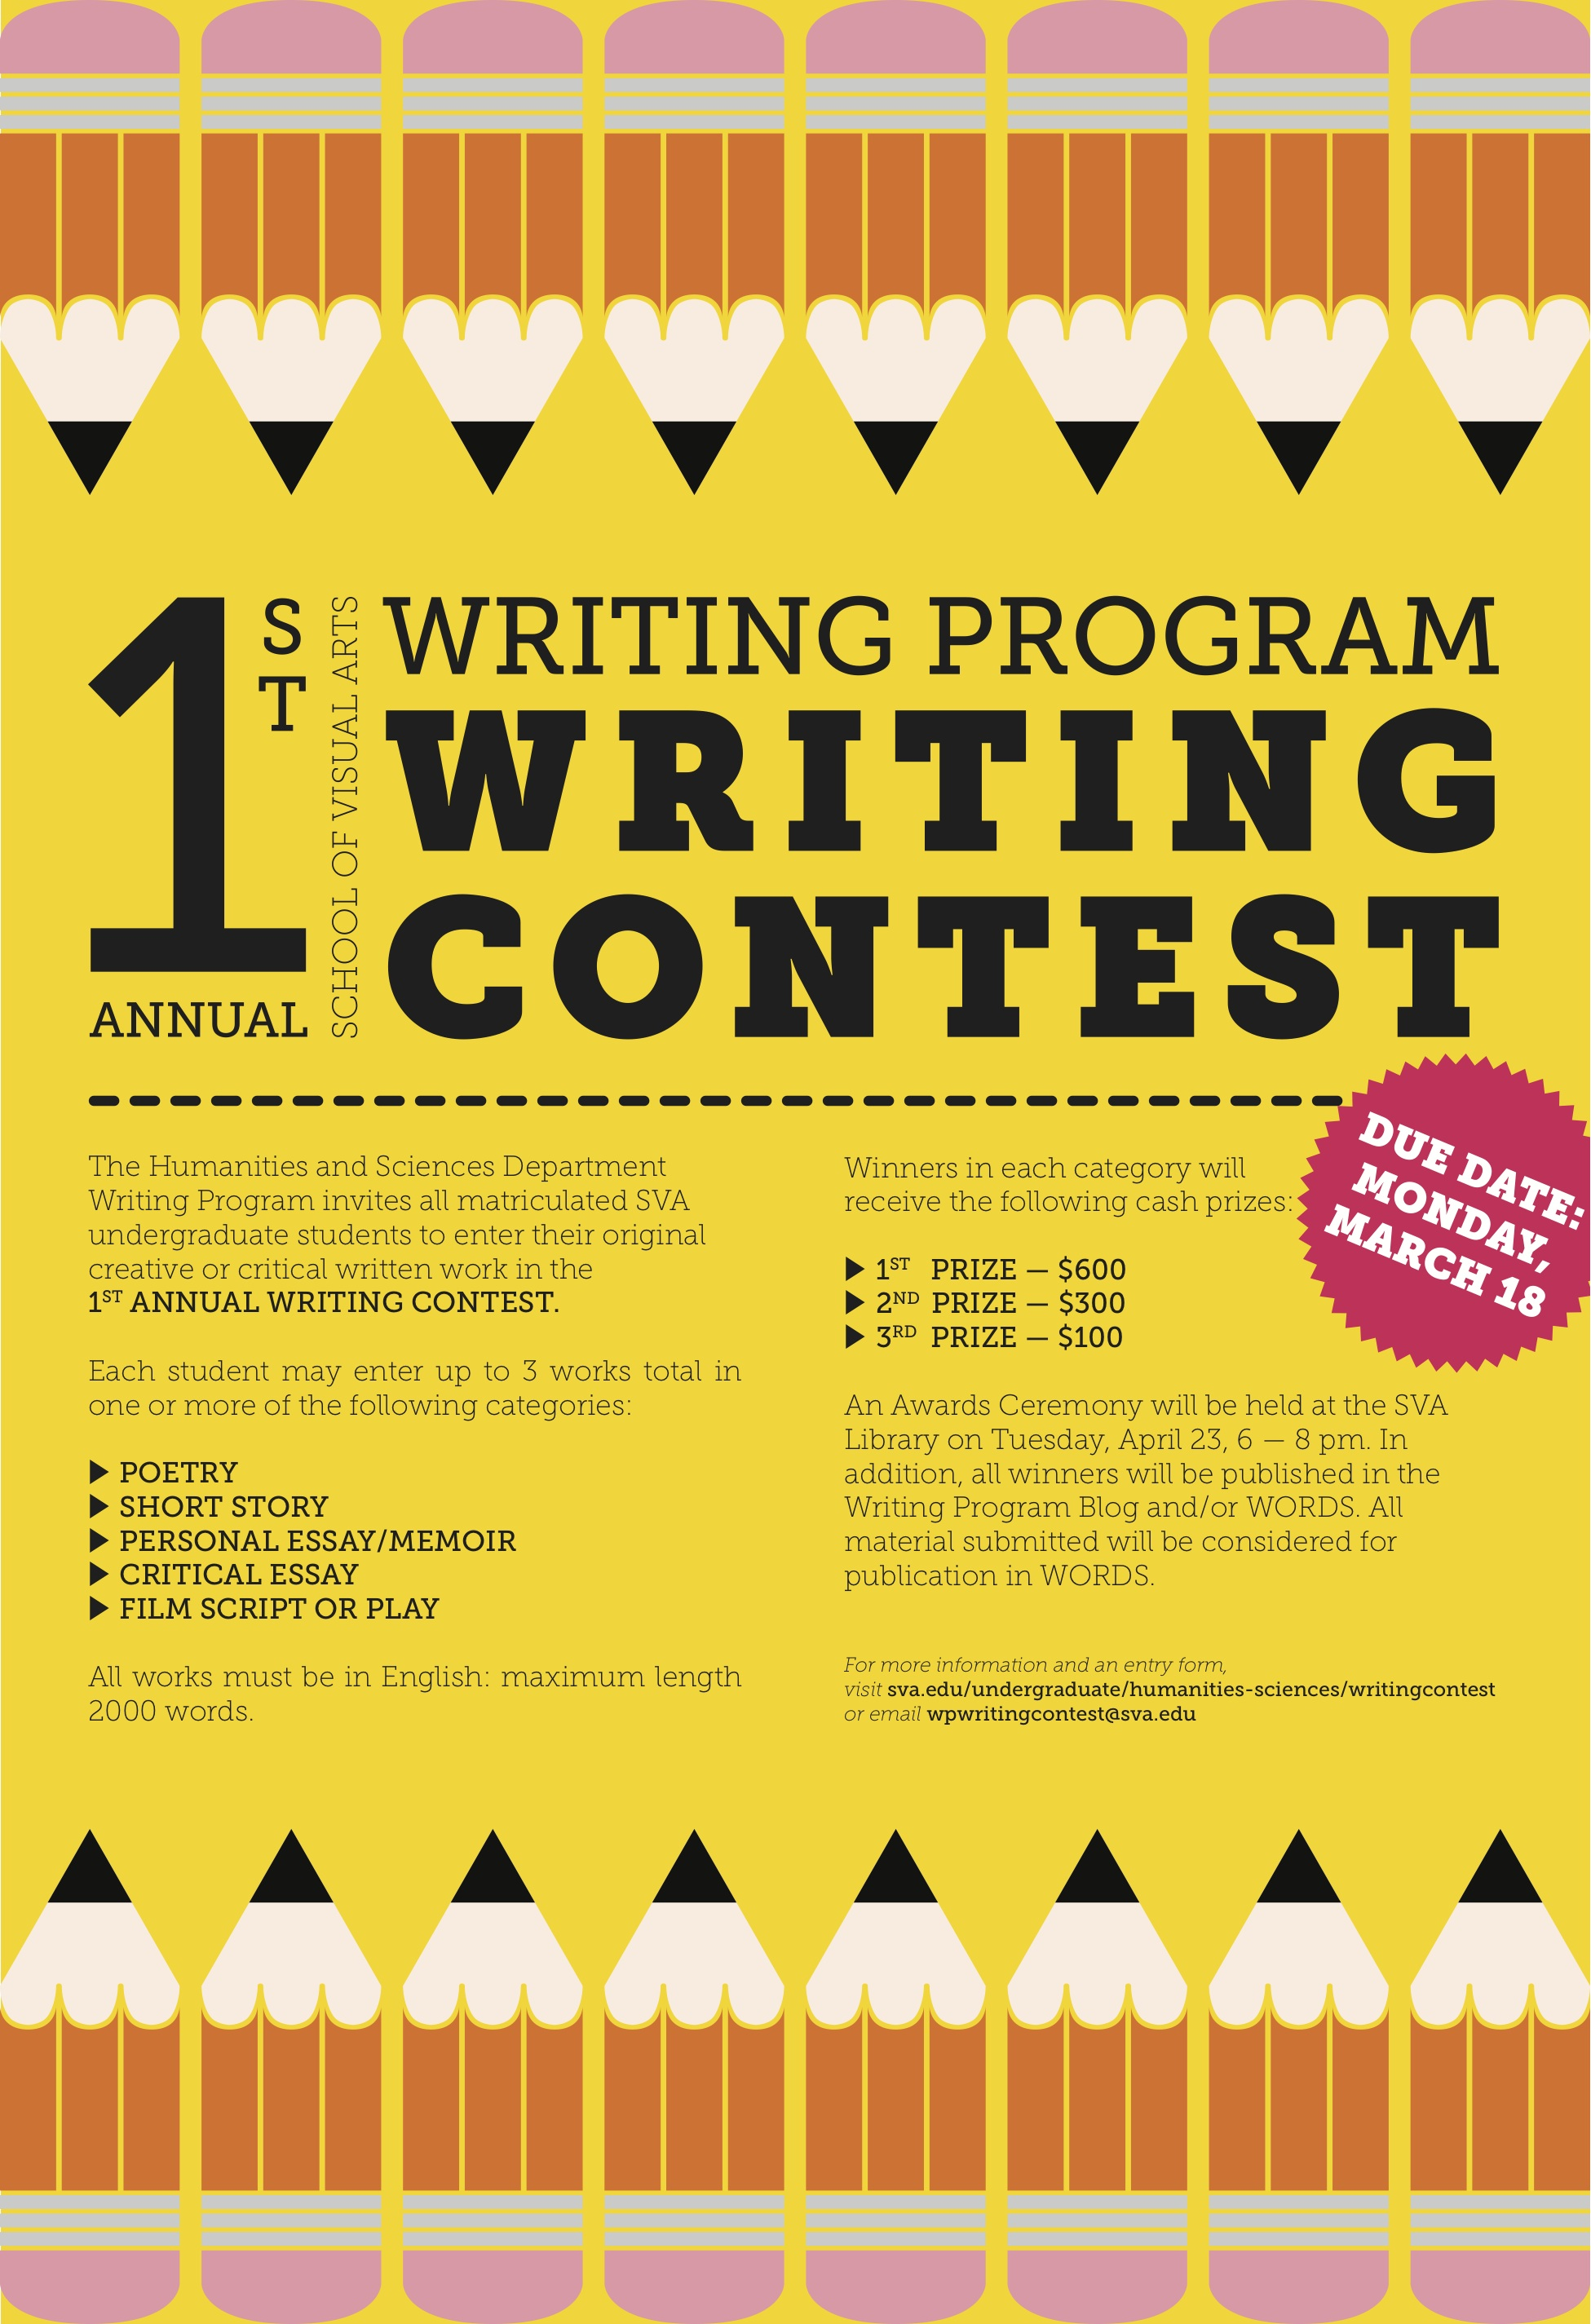 010 Essay Writing Blog 1st Annual Sva Program Contest Criteria Objectives Rubrics Tips Philippines For Nutrition Month Guidelines Mechanics Incredible Competition College Students By Essayhub Sample Full